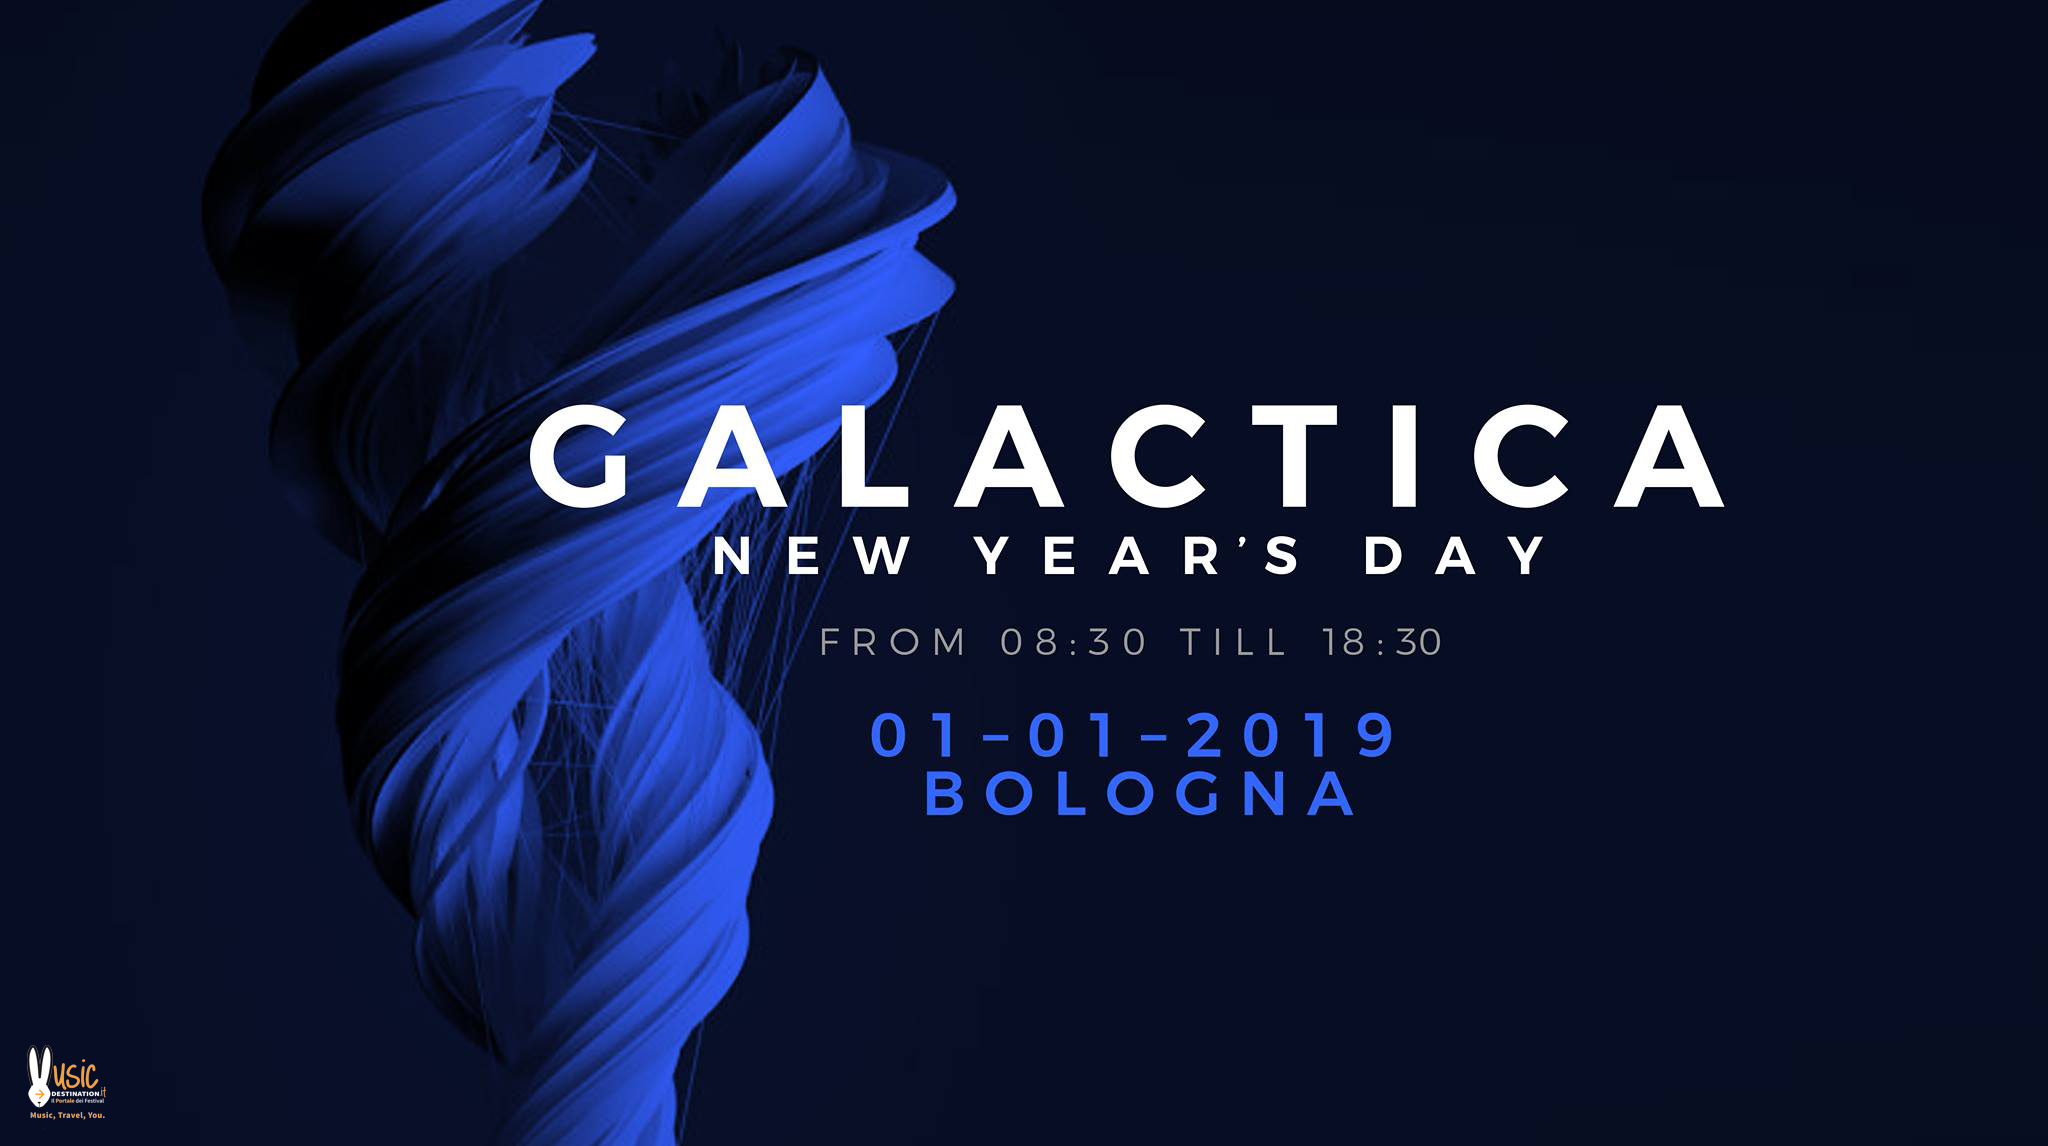 Galactica New Years Day After – 01 Gennaio 2019 Bologna Fiere – Ticket e Pacchetti Hotel